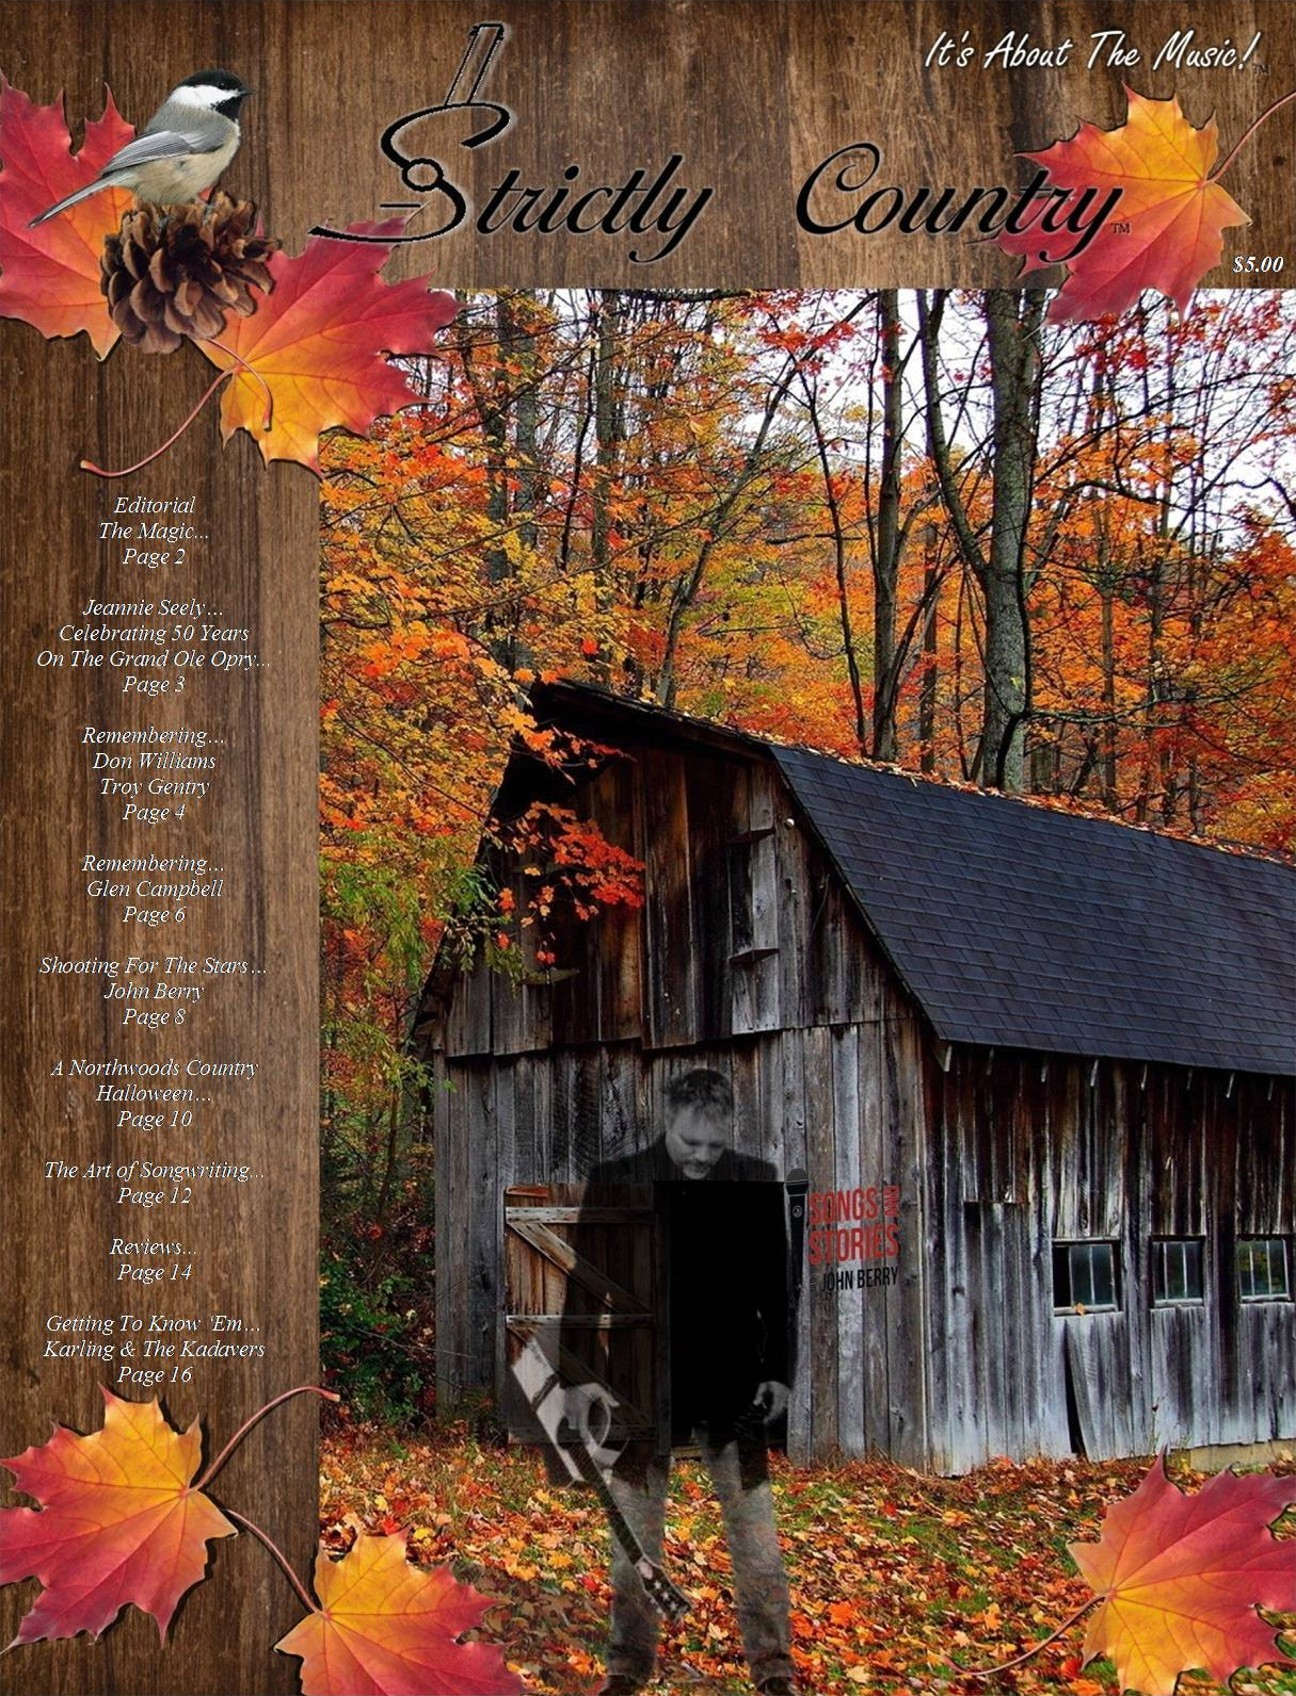 Strictly Country Magazine - Volume 24 Issue 5